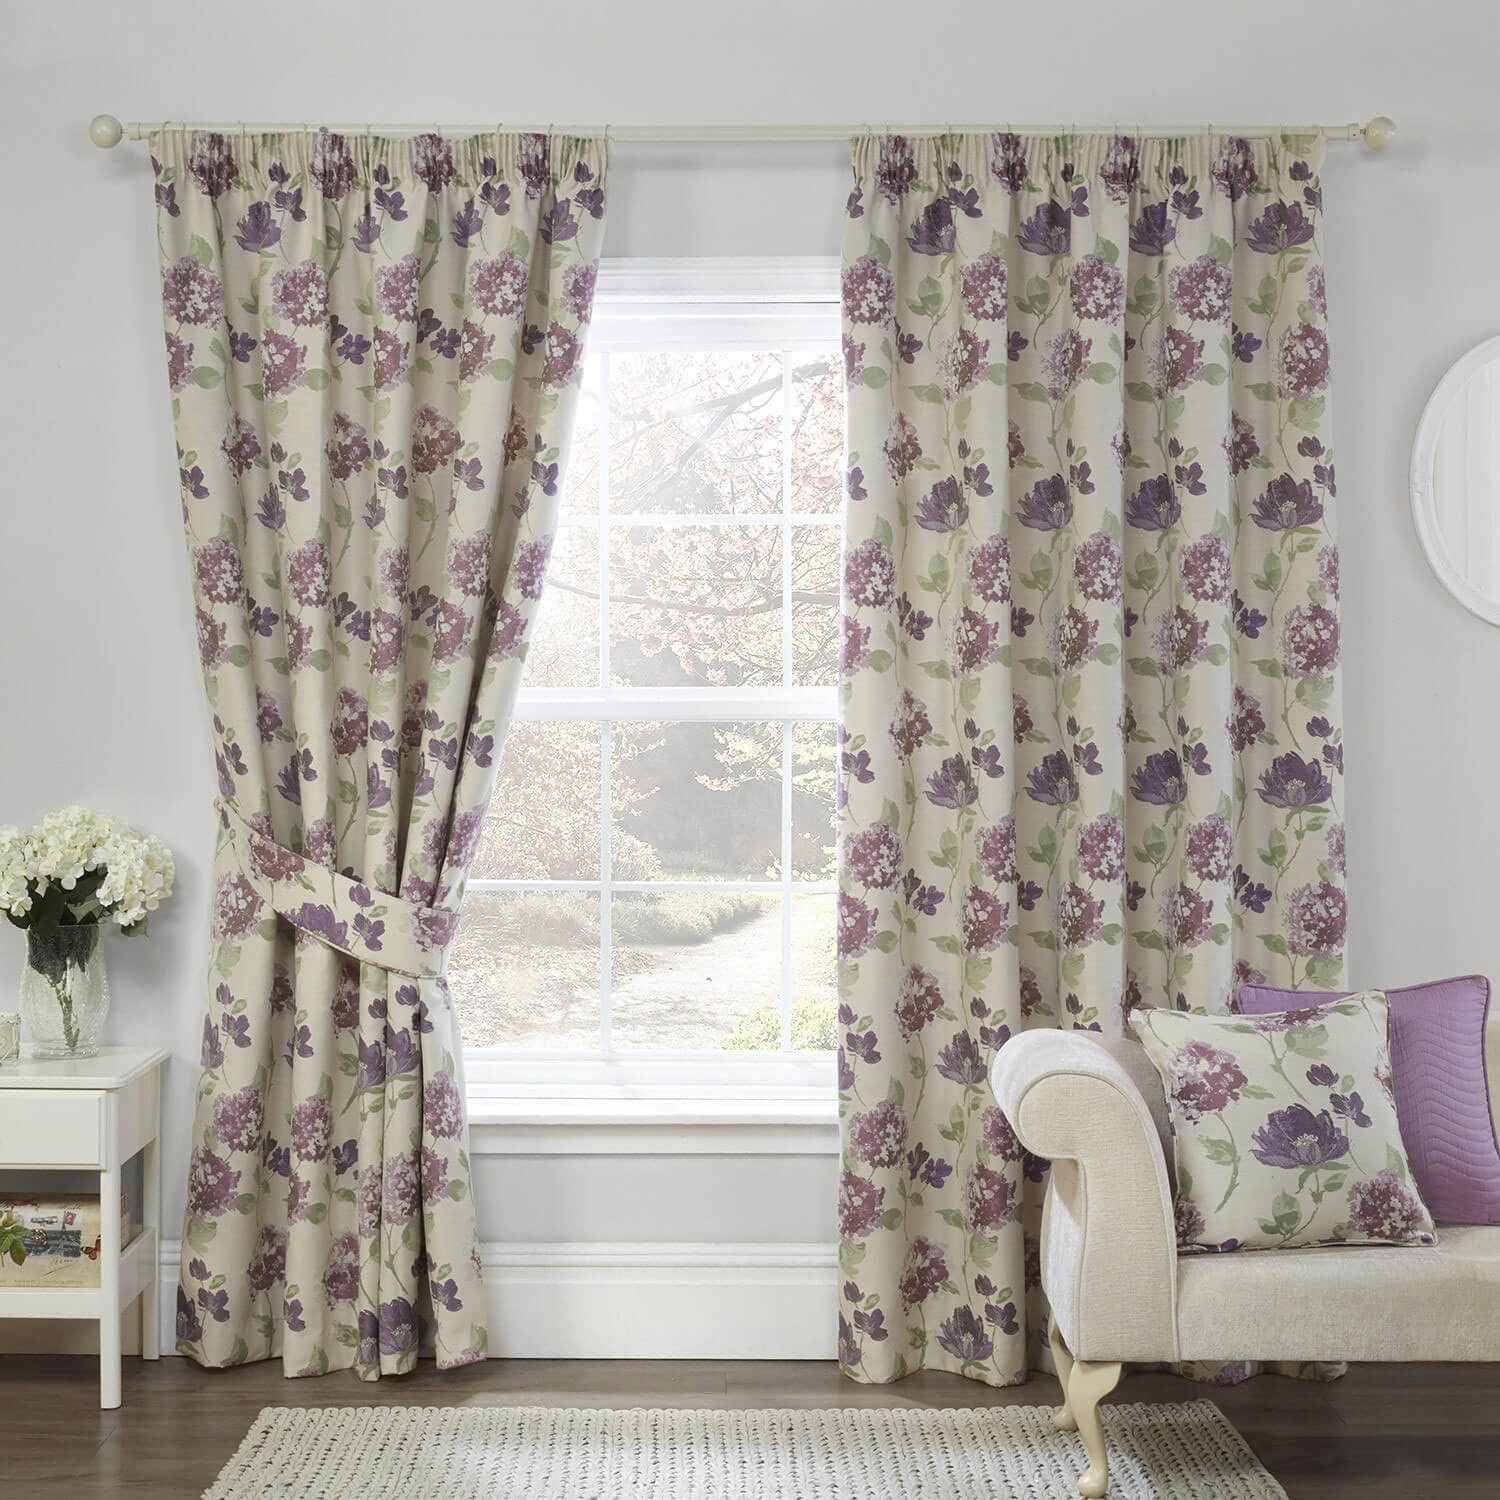 Cheap Blackout Curtains for Inspiring Home Decorating Ideas: Cheap Blackout Curtains | Blackout Curtains Thermal | Thermal Curtains Clearance